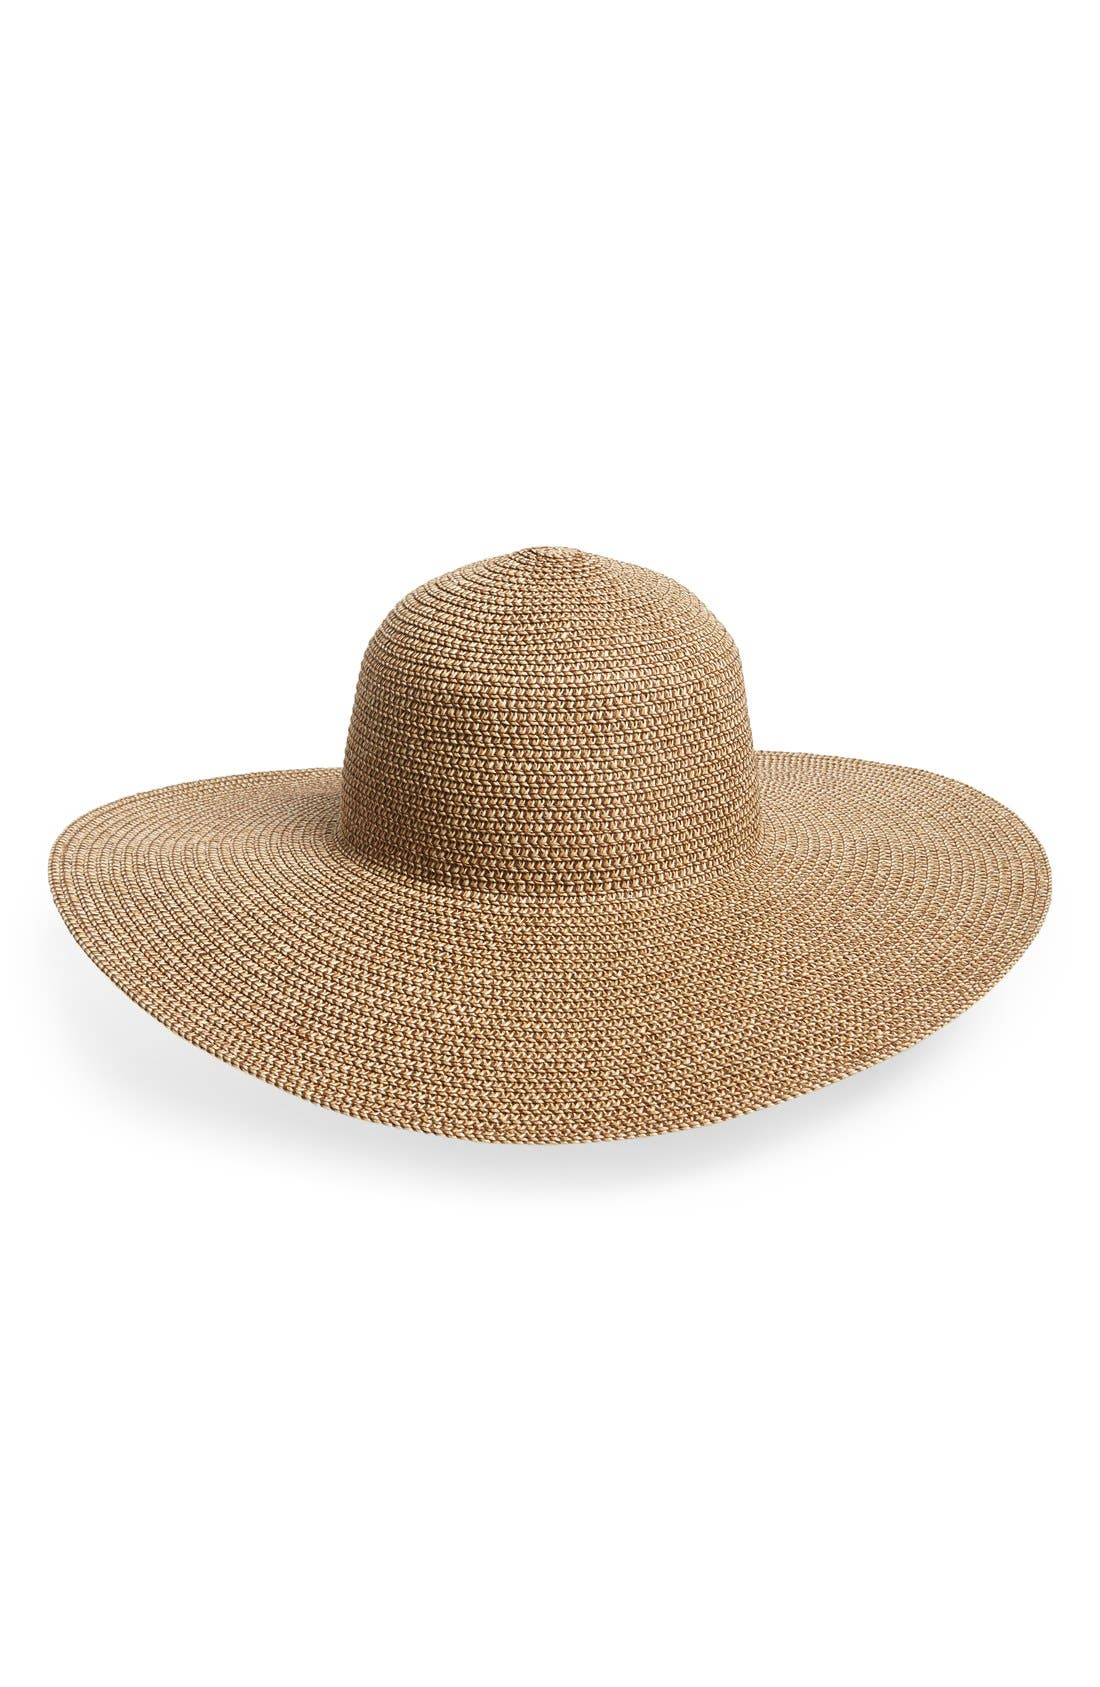 Alternate Image 1 Selected - David & Young Floppy Straw Hat